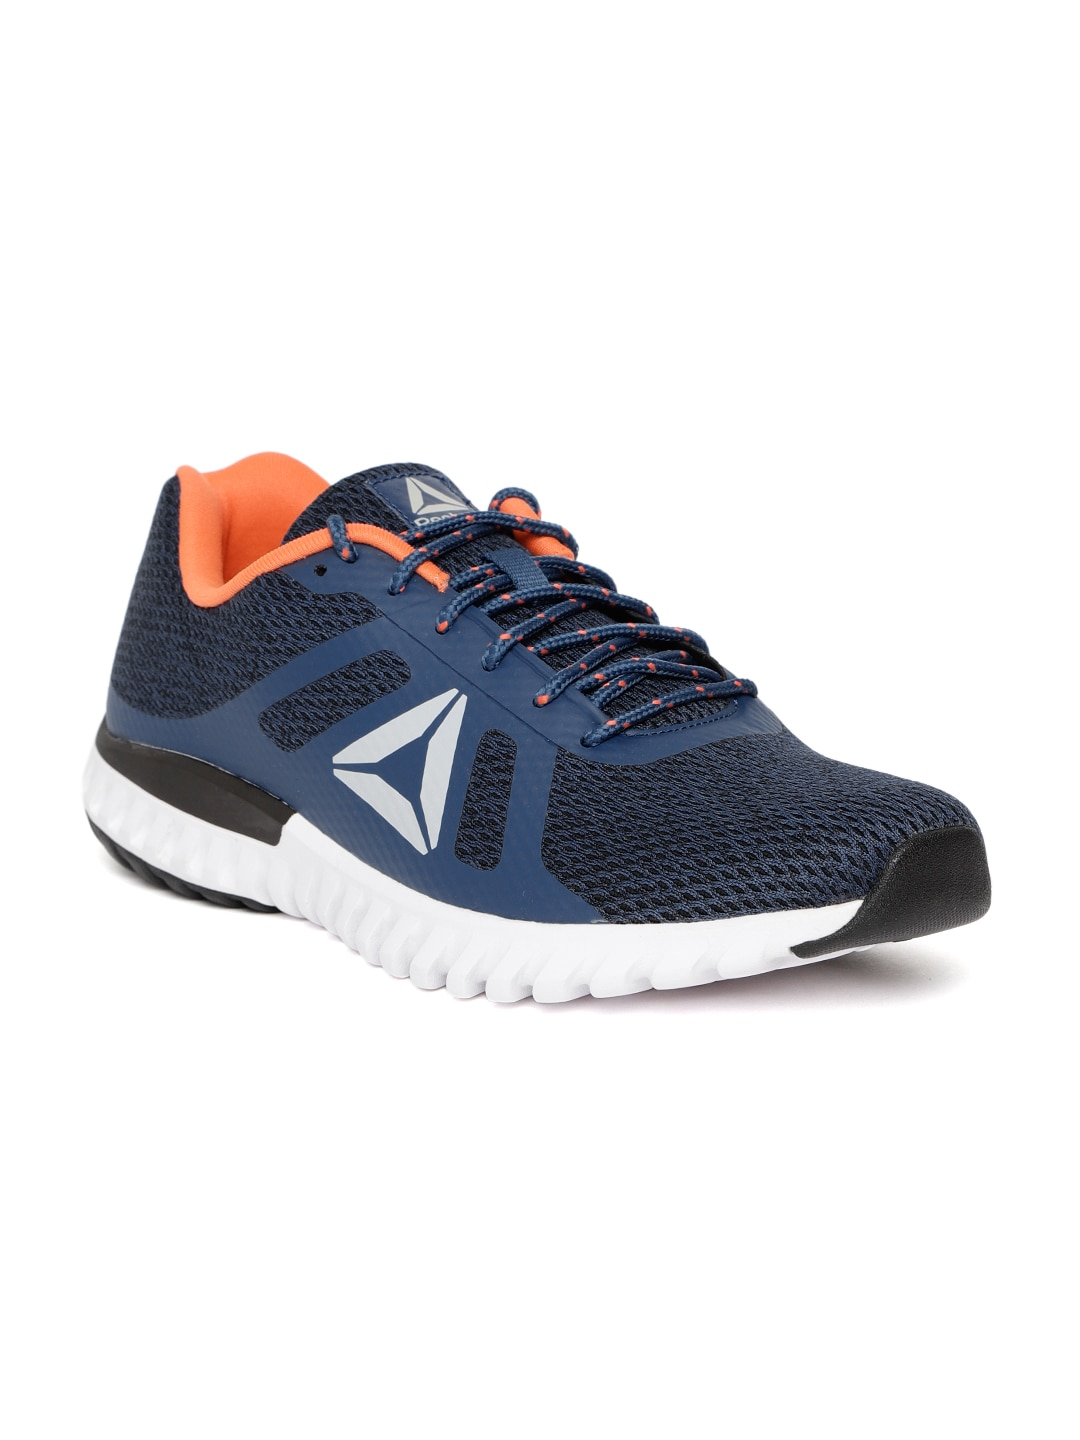 5749d5f0238 Reebok Navy Blue Blue Sports Shoes - Buy Reebok Navy Blue Blue Sports Shoes  online in India